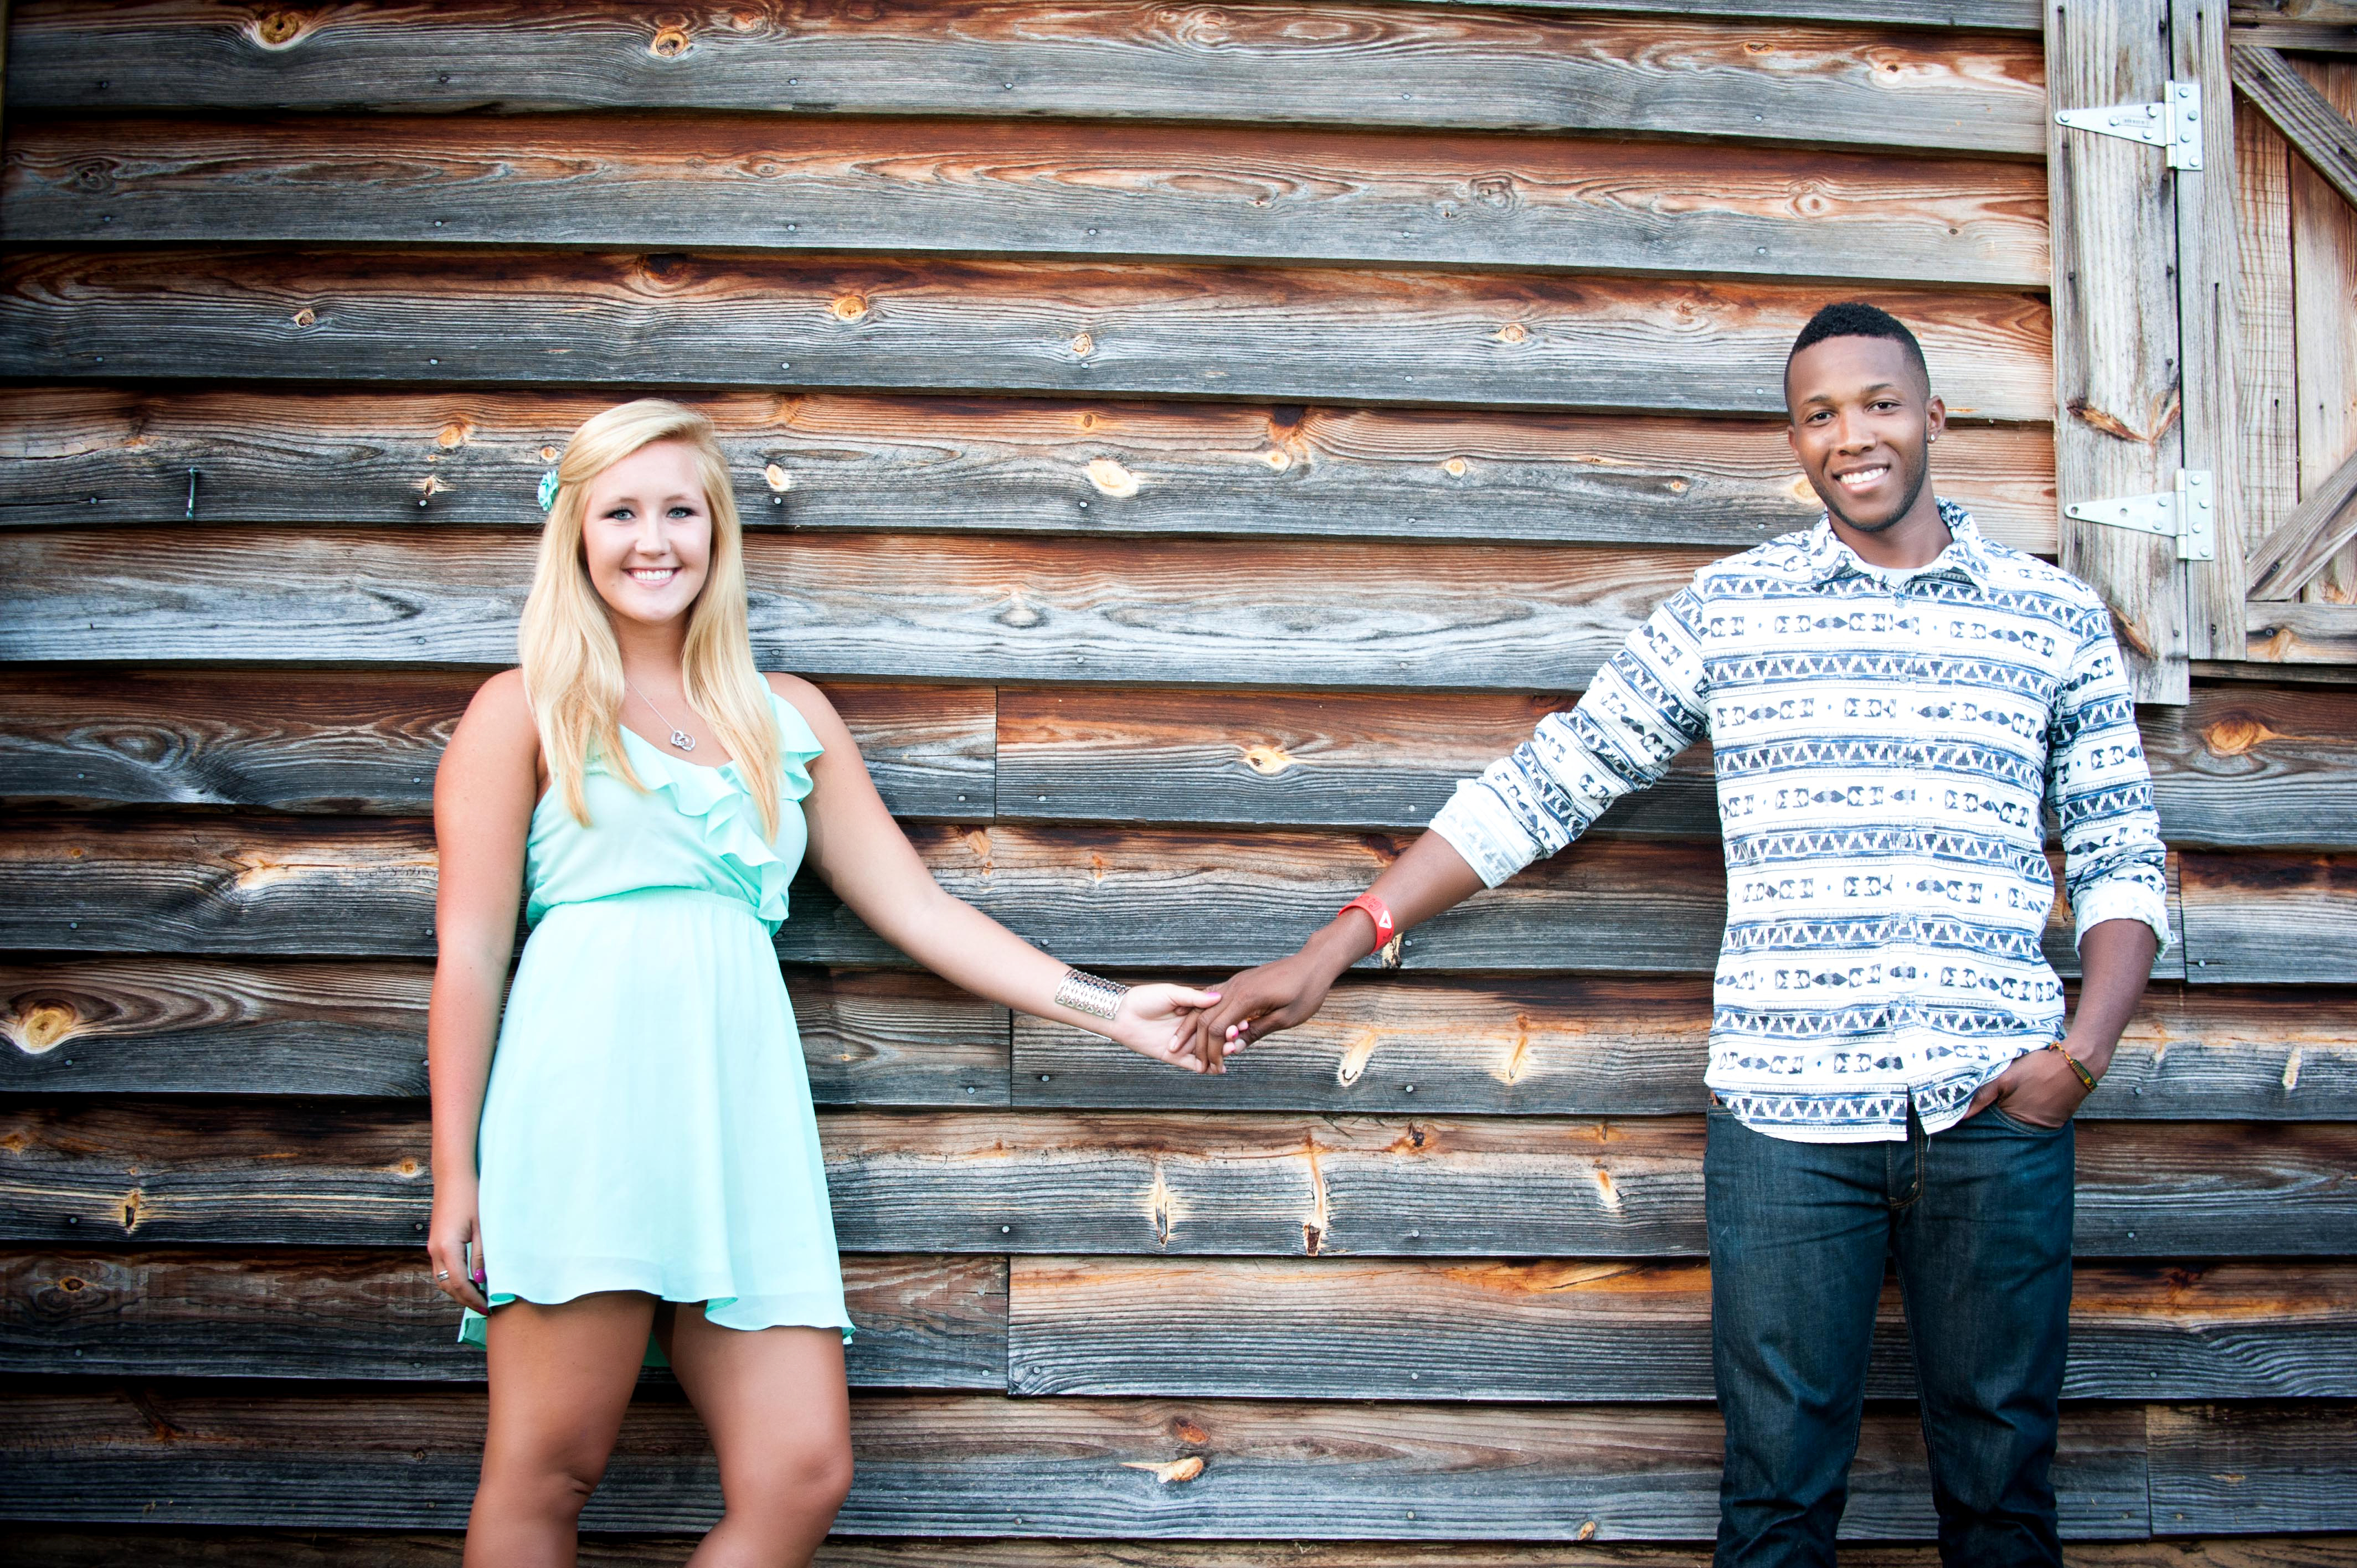 Image 5 of Jessica and De'Angelo | Barn-Style Proposal